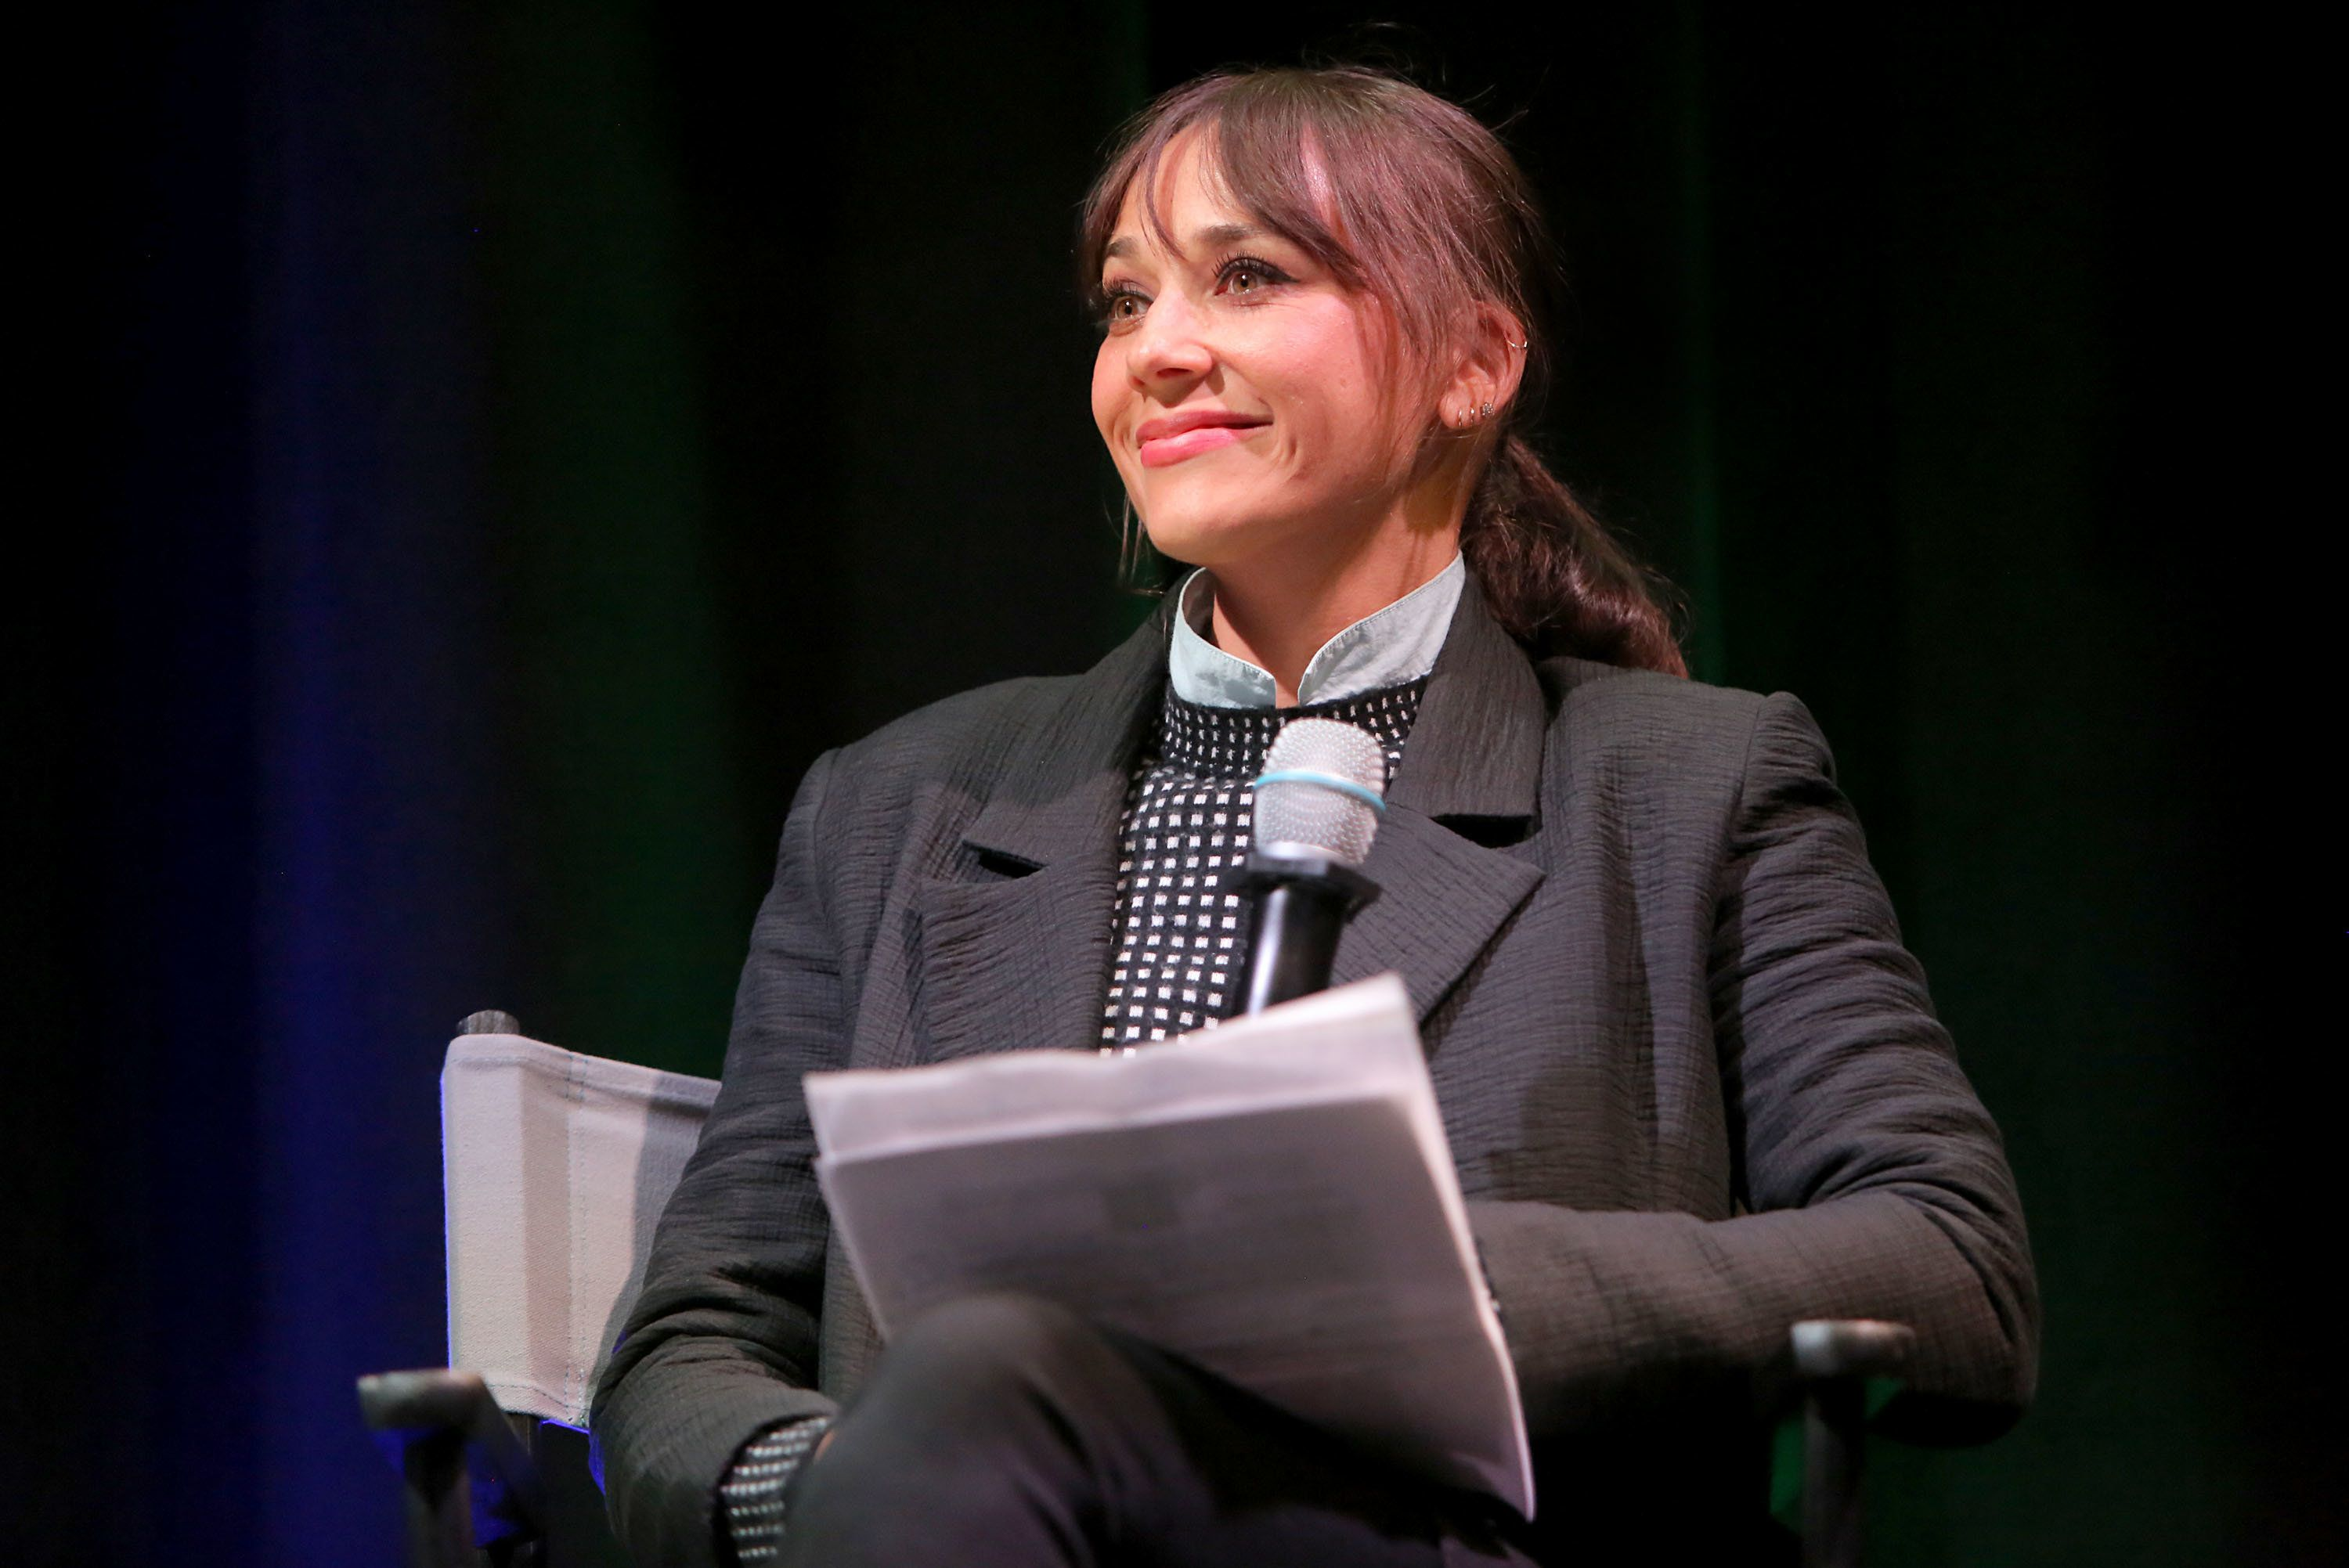 VENICE, CA - NOVEMBER 07:  Rashida Jones speaks onstage during the MGA Entertainment, Cast of Netflix's Project Mc2, and Rashida Jones celebration of National S.T.E.A.M. Day and the premiere of part 6 in L.A. at Google Headquarters on November 7, 2017 in Venice, California.  (Photo by Rachel Murray/Getty Images for MGA Entertainment)